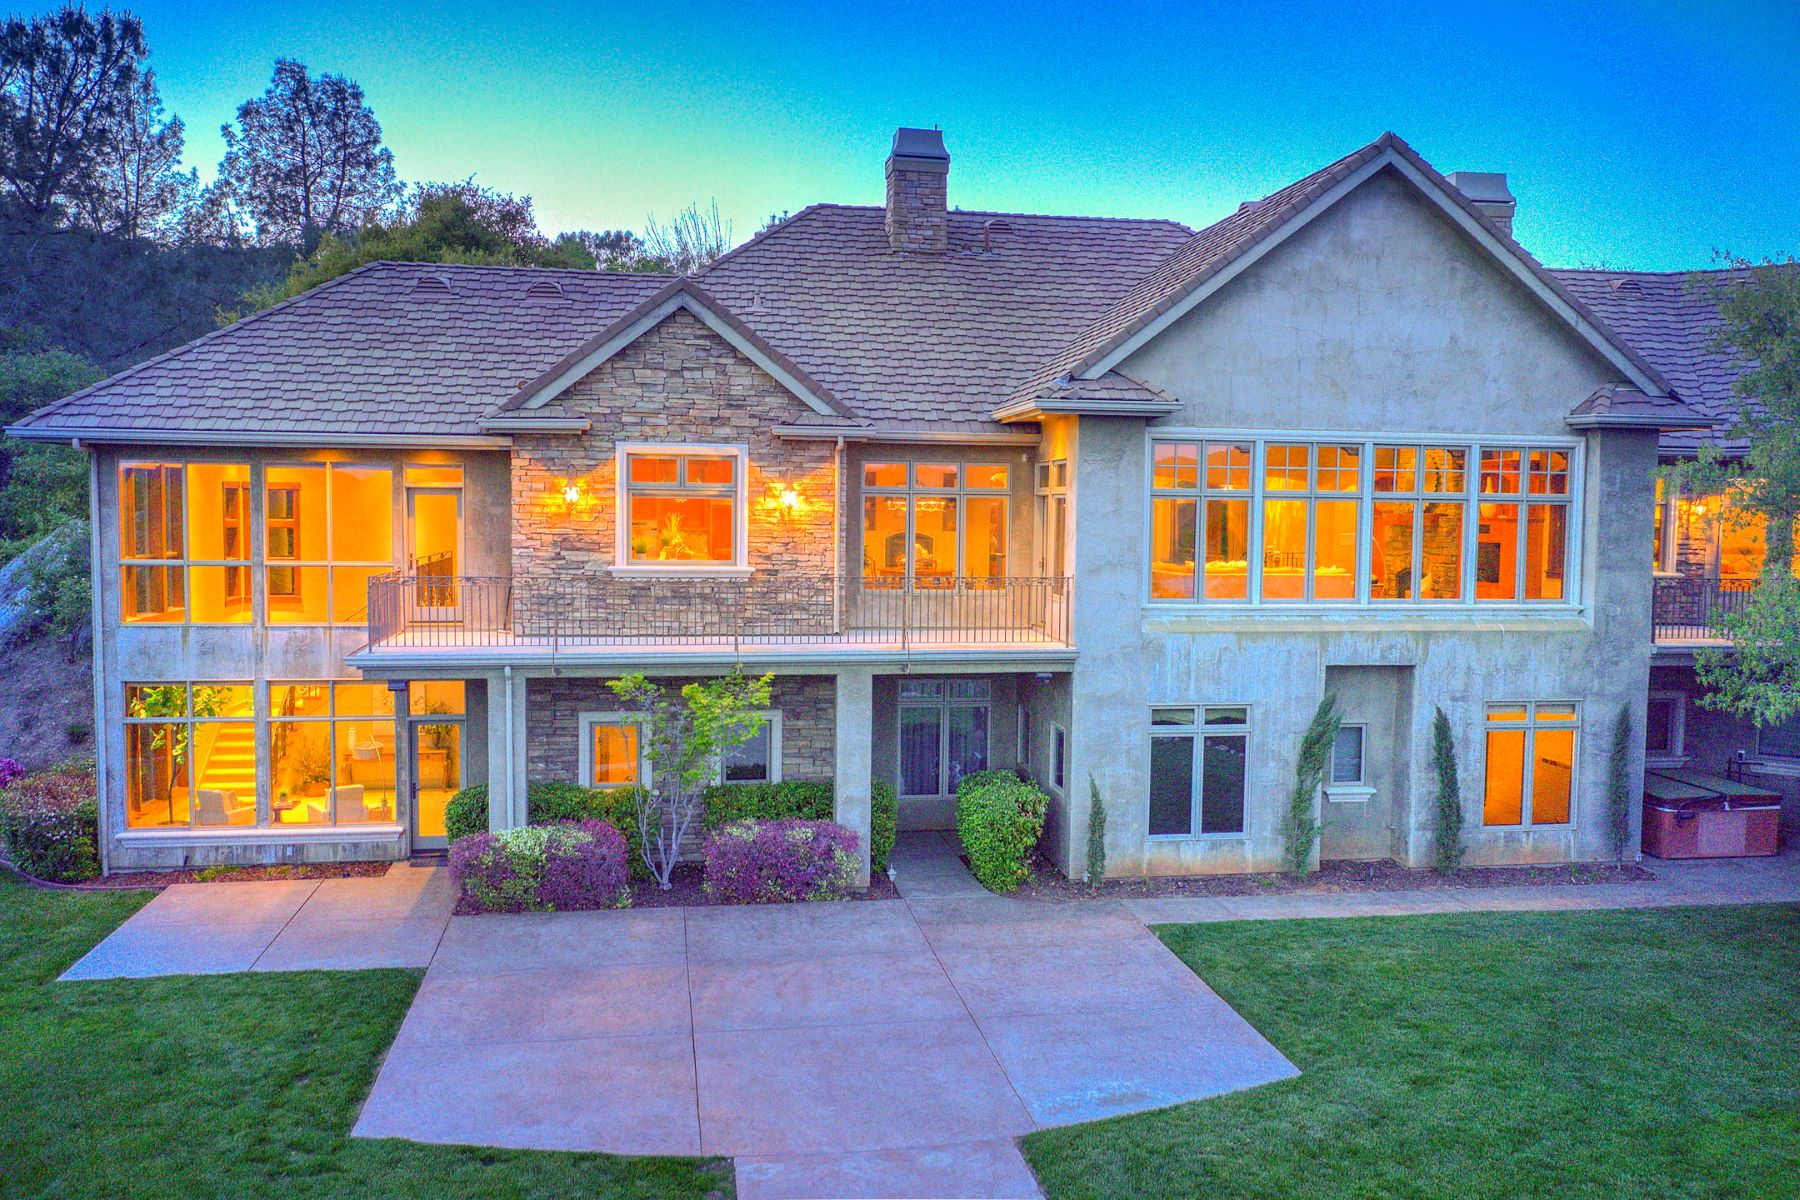 Single Family Home for Active at 3460 N Lakeshore Blvd, Loomis, CA 95650 3460 N Lakeshore Blvd Loomis, California 95650 United States